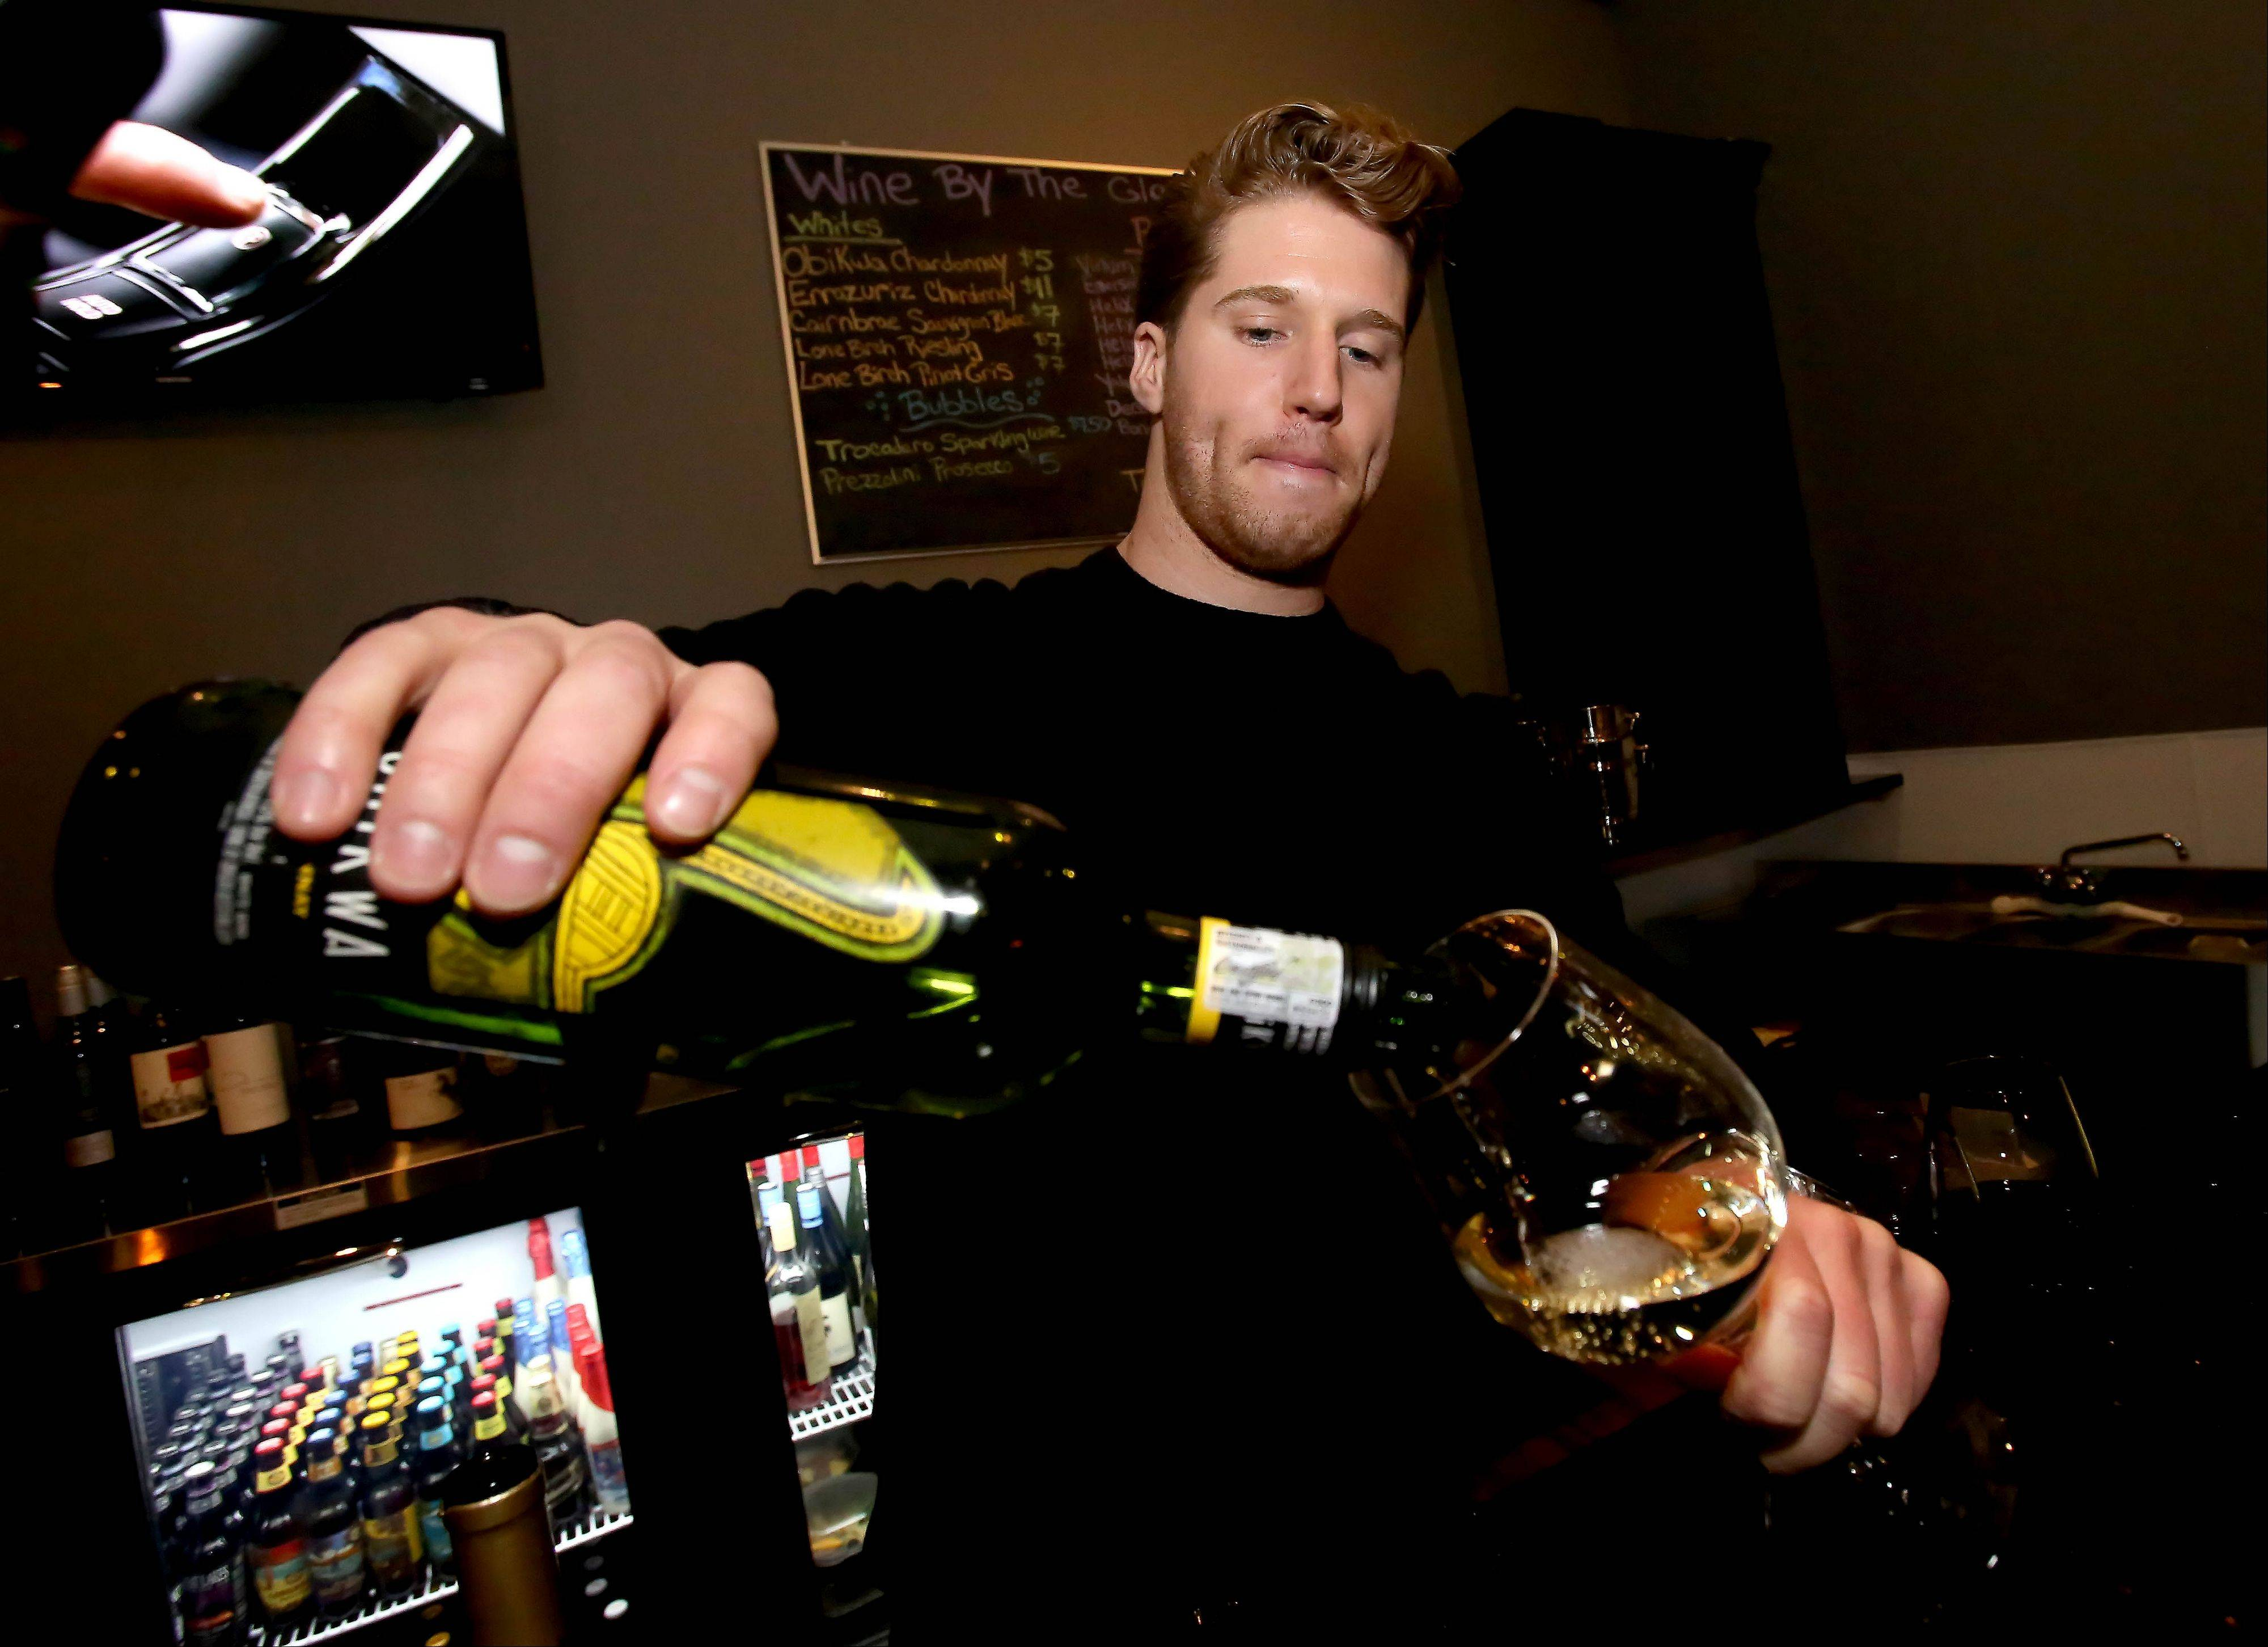 Bartender Kelly Williams pours a glass of wine at The Vino Cellar in Lombard.